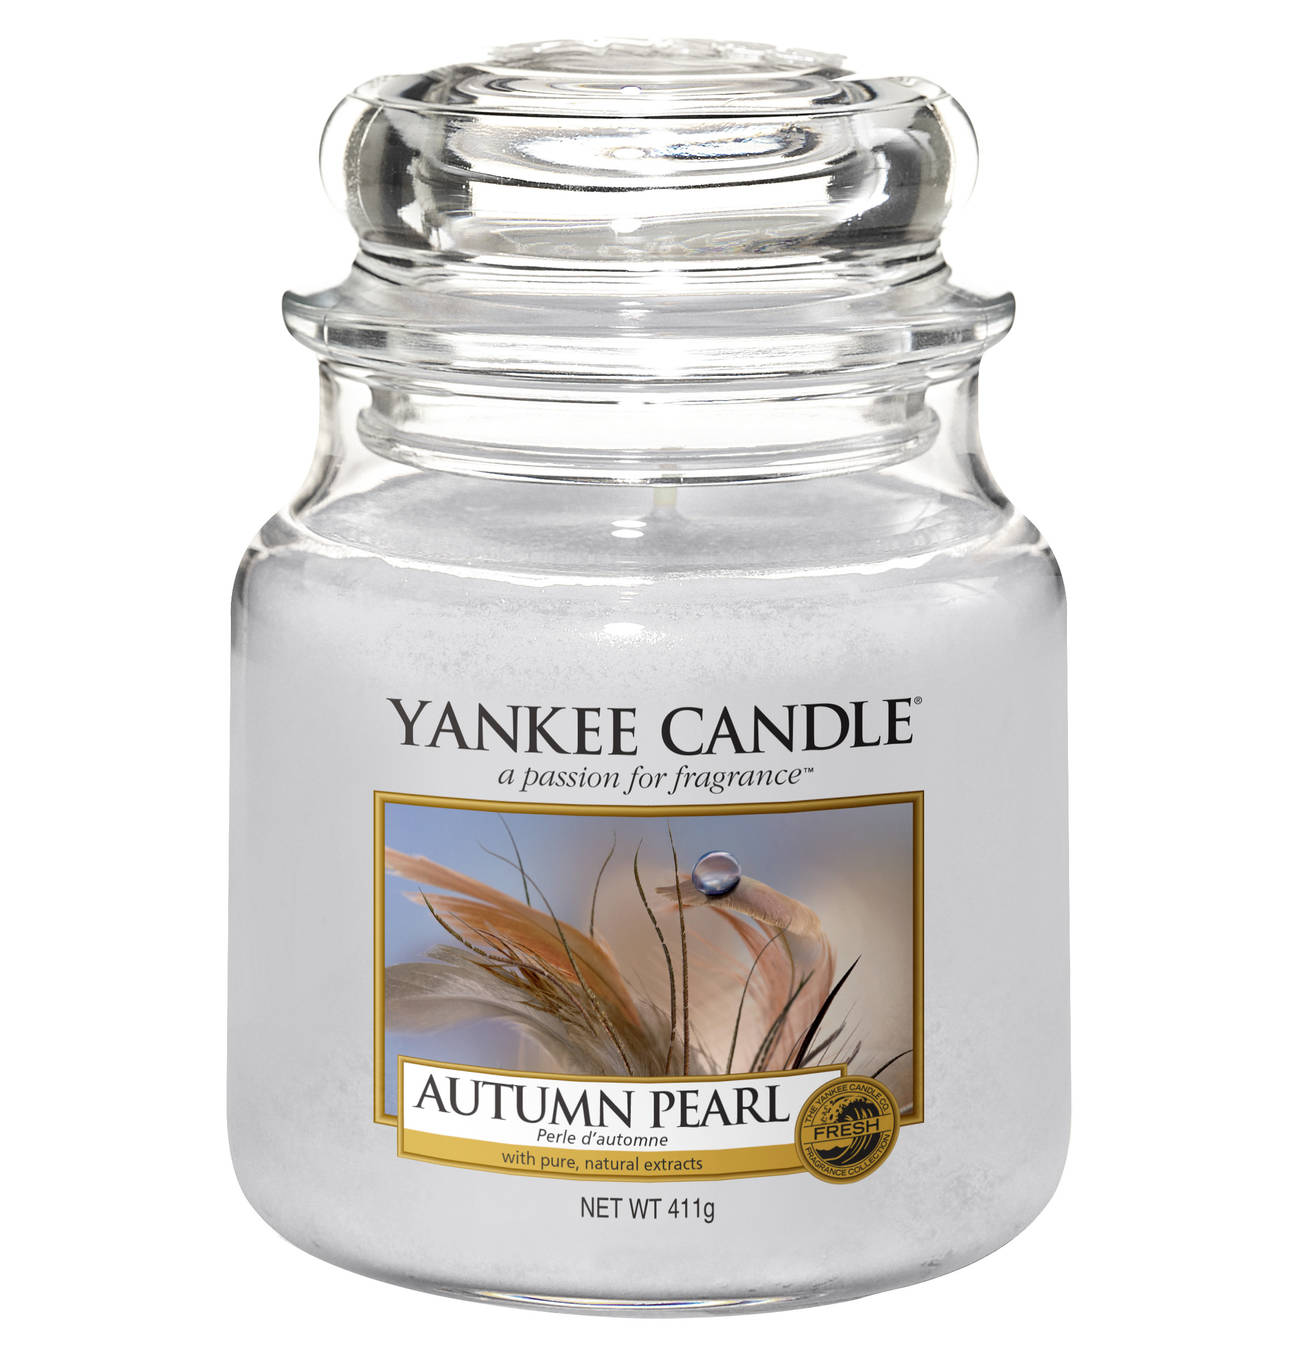 Yankee Candle Autum Pearl Jar M Products In 2019 Herbst Kerzen